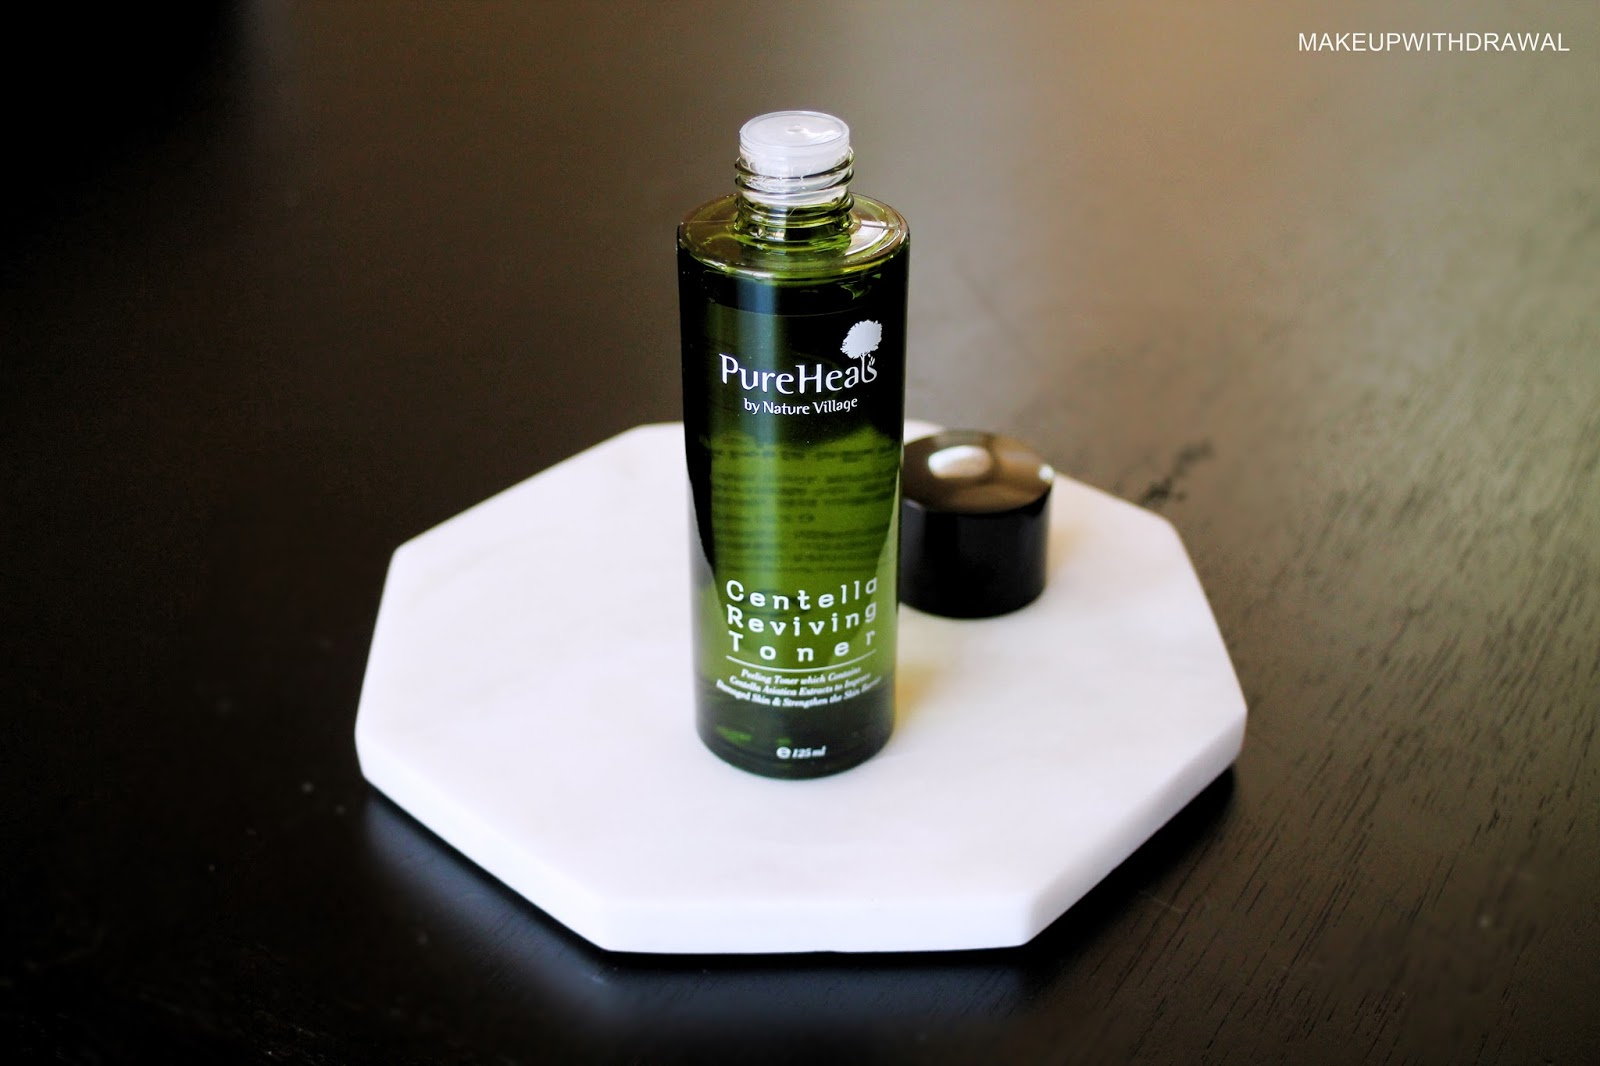 Blemish Skincare Routine Summer 2017 Makeup Withdrawal Pureheals Centella 90 Ampoule 30ml I Find It Very Soothing Nourishing And Gently Cleansing My Face To Be Soft Calm After Ive Rinsed This Mask Away Lightly Blotted